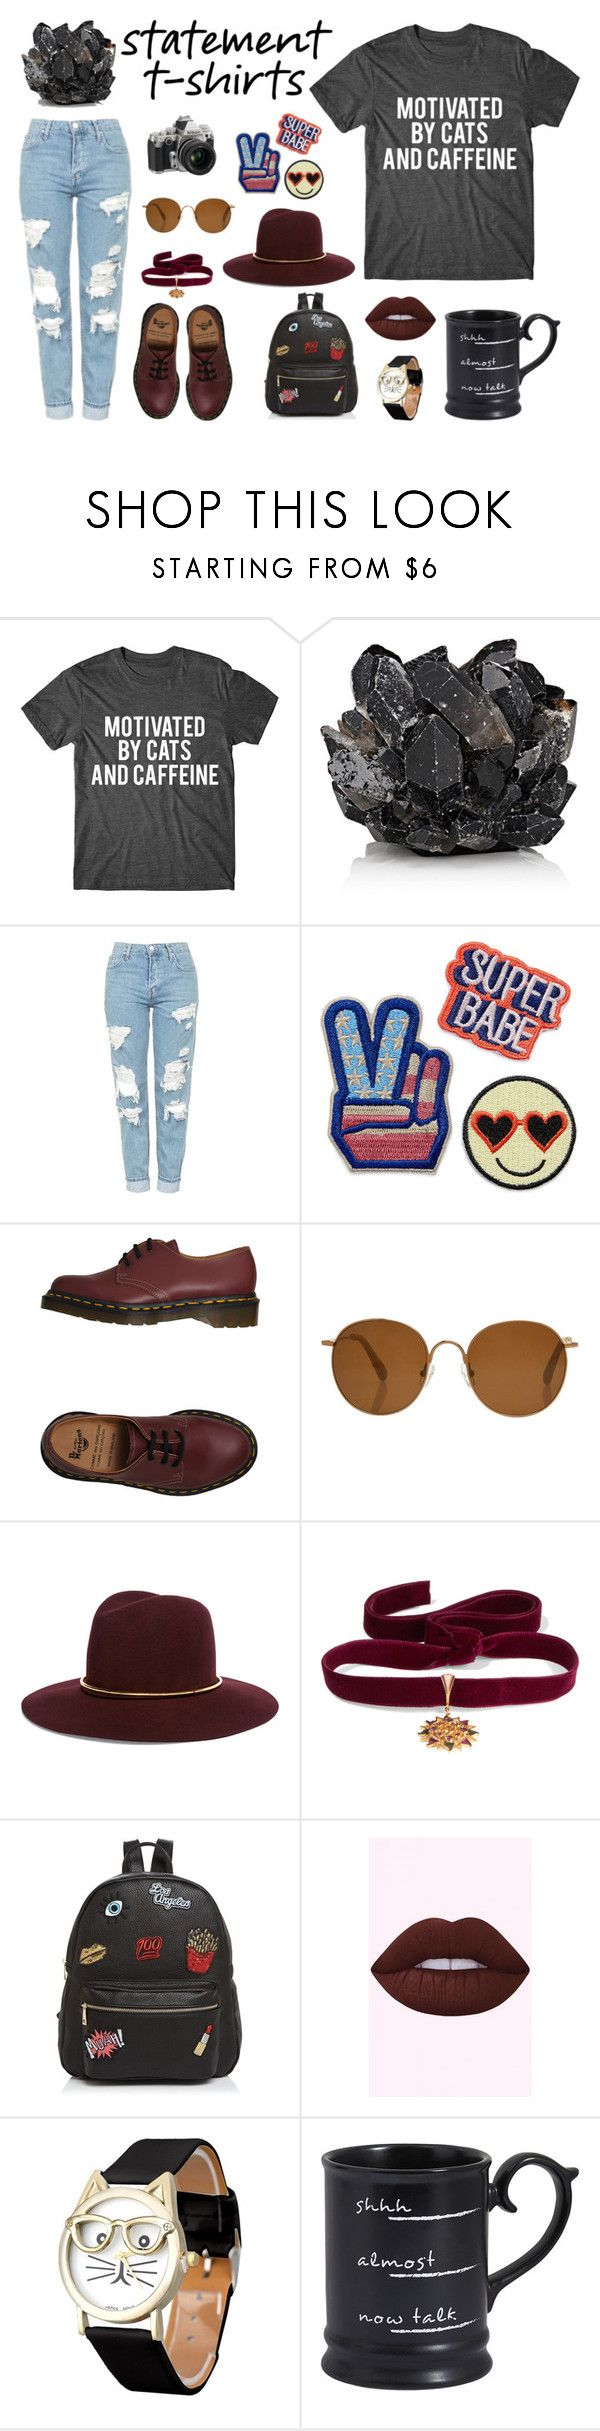 """""""cats & caffeine"""" by lanagur on Polyvore featuring мода, McCoy Design, Topshop, Nikon, Dr. Martens, The Row, Janessa Leone, Diego Percossi Papi, Ollie & B и Pier 1 Imports"""